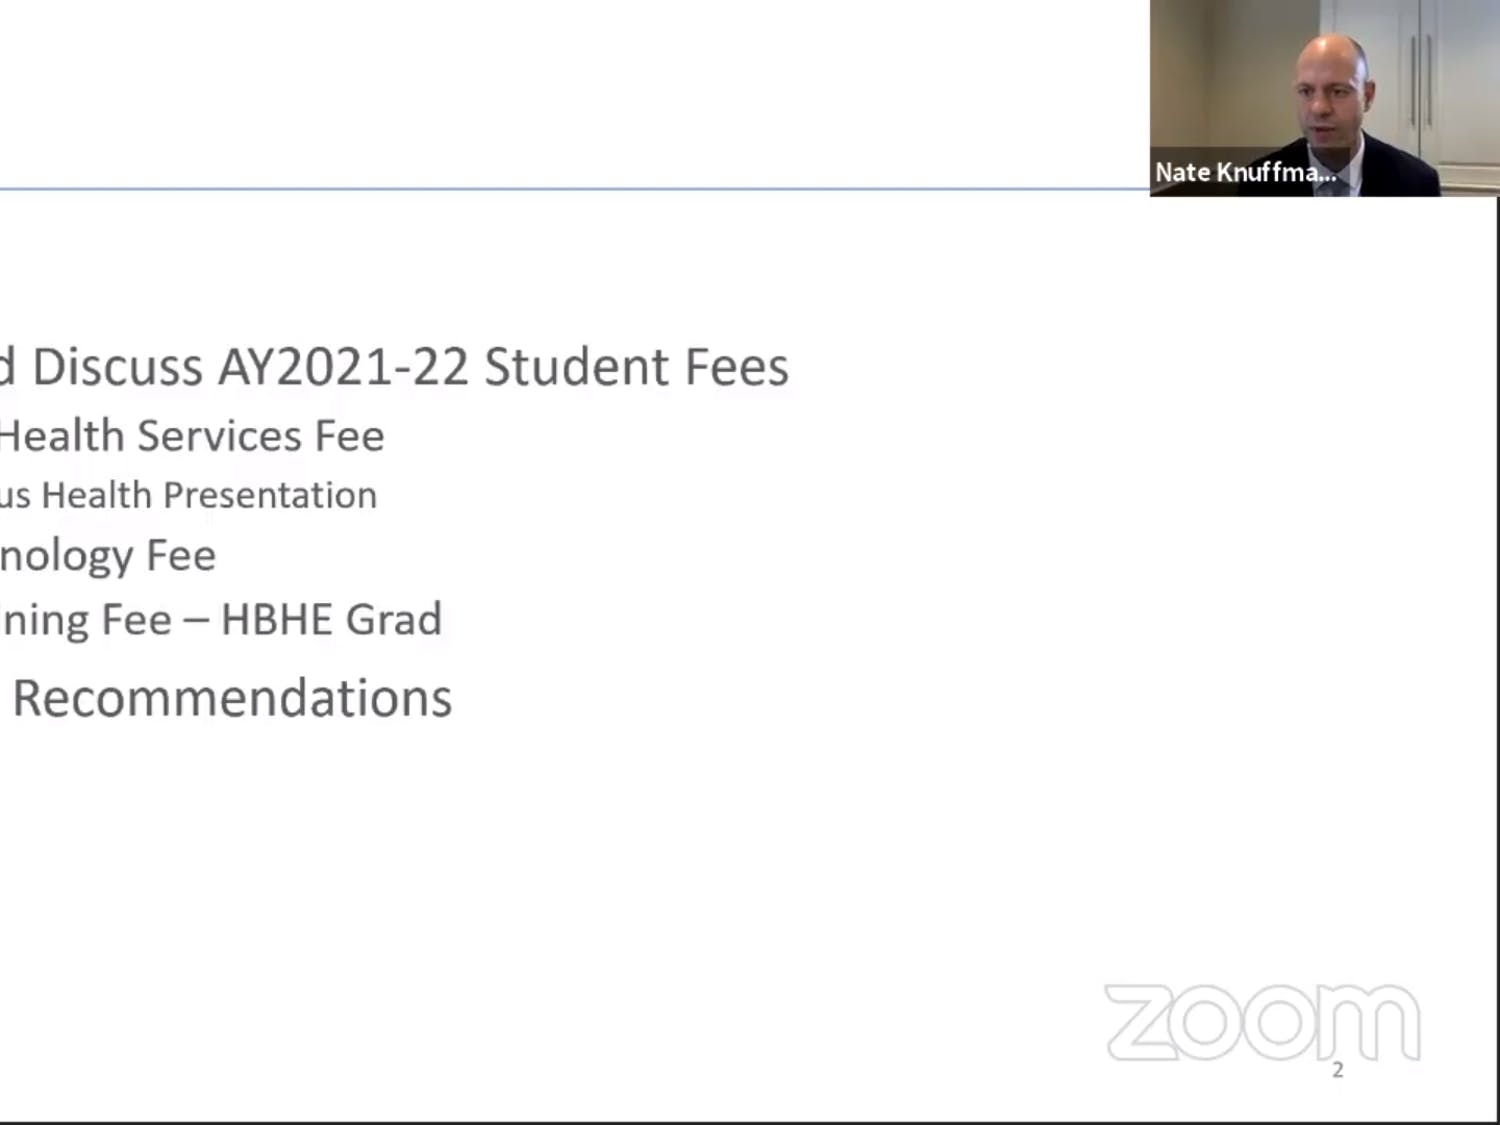 Screenshot from the Student Fees Advisory Subcommittee virtual meeting on Thursday, October 22, 2020.